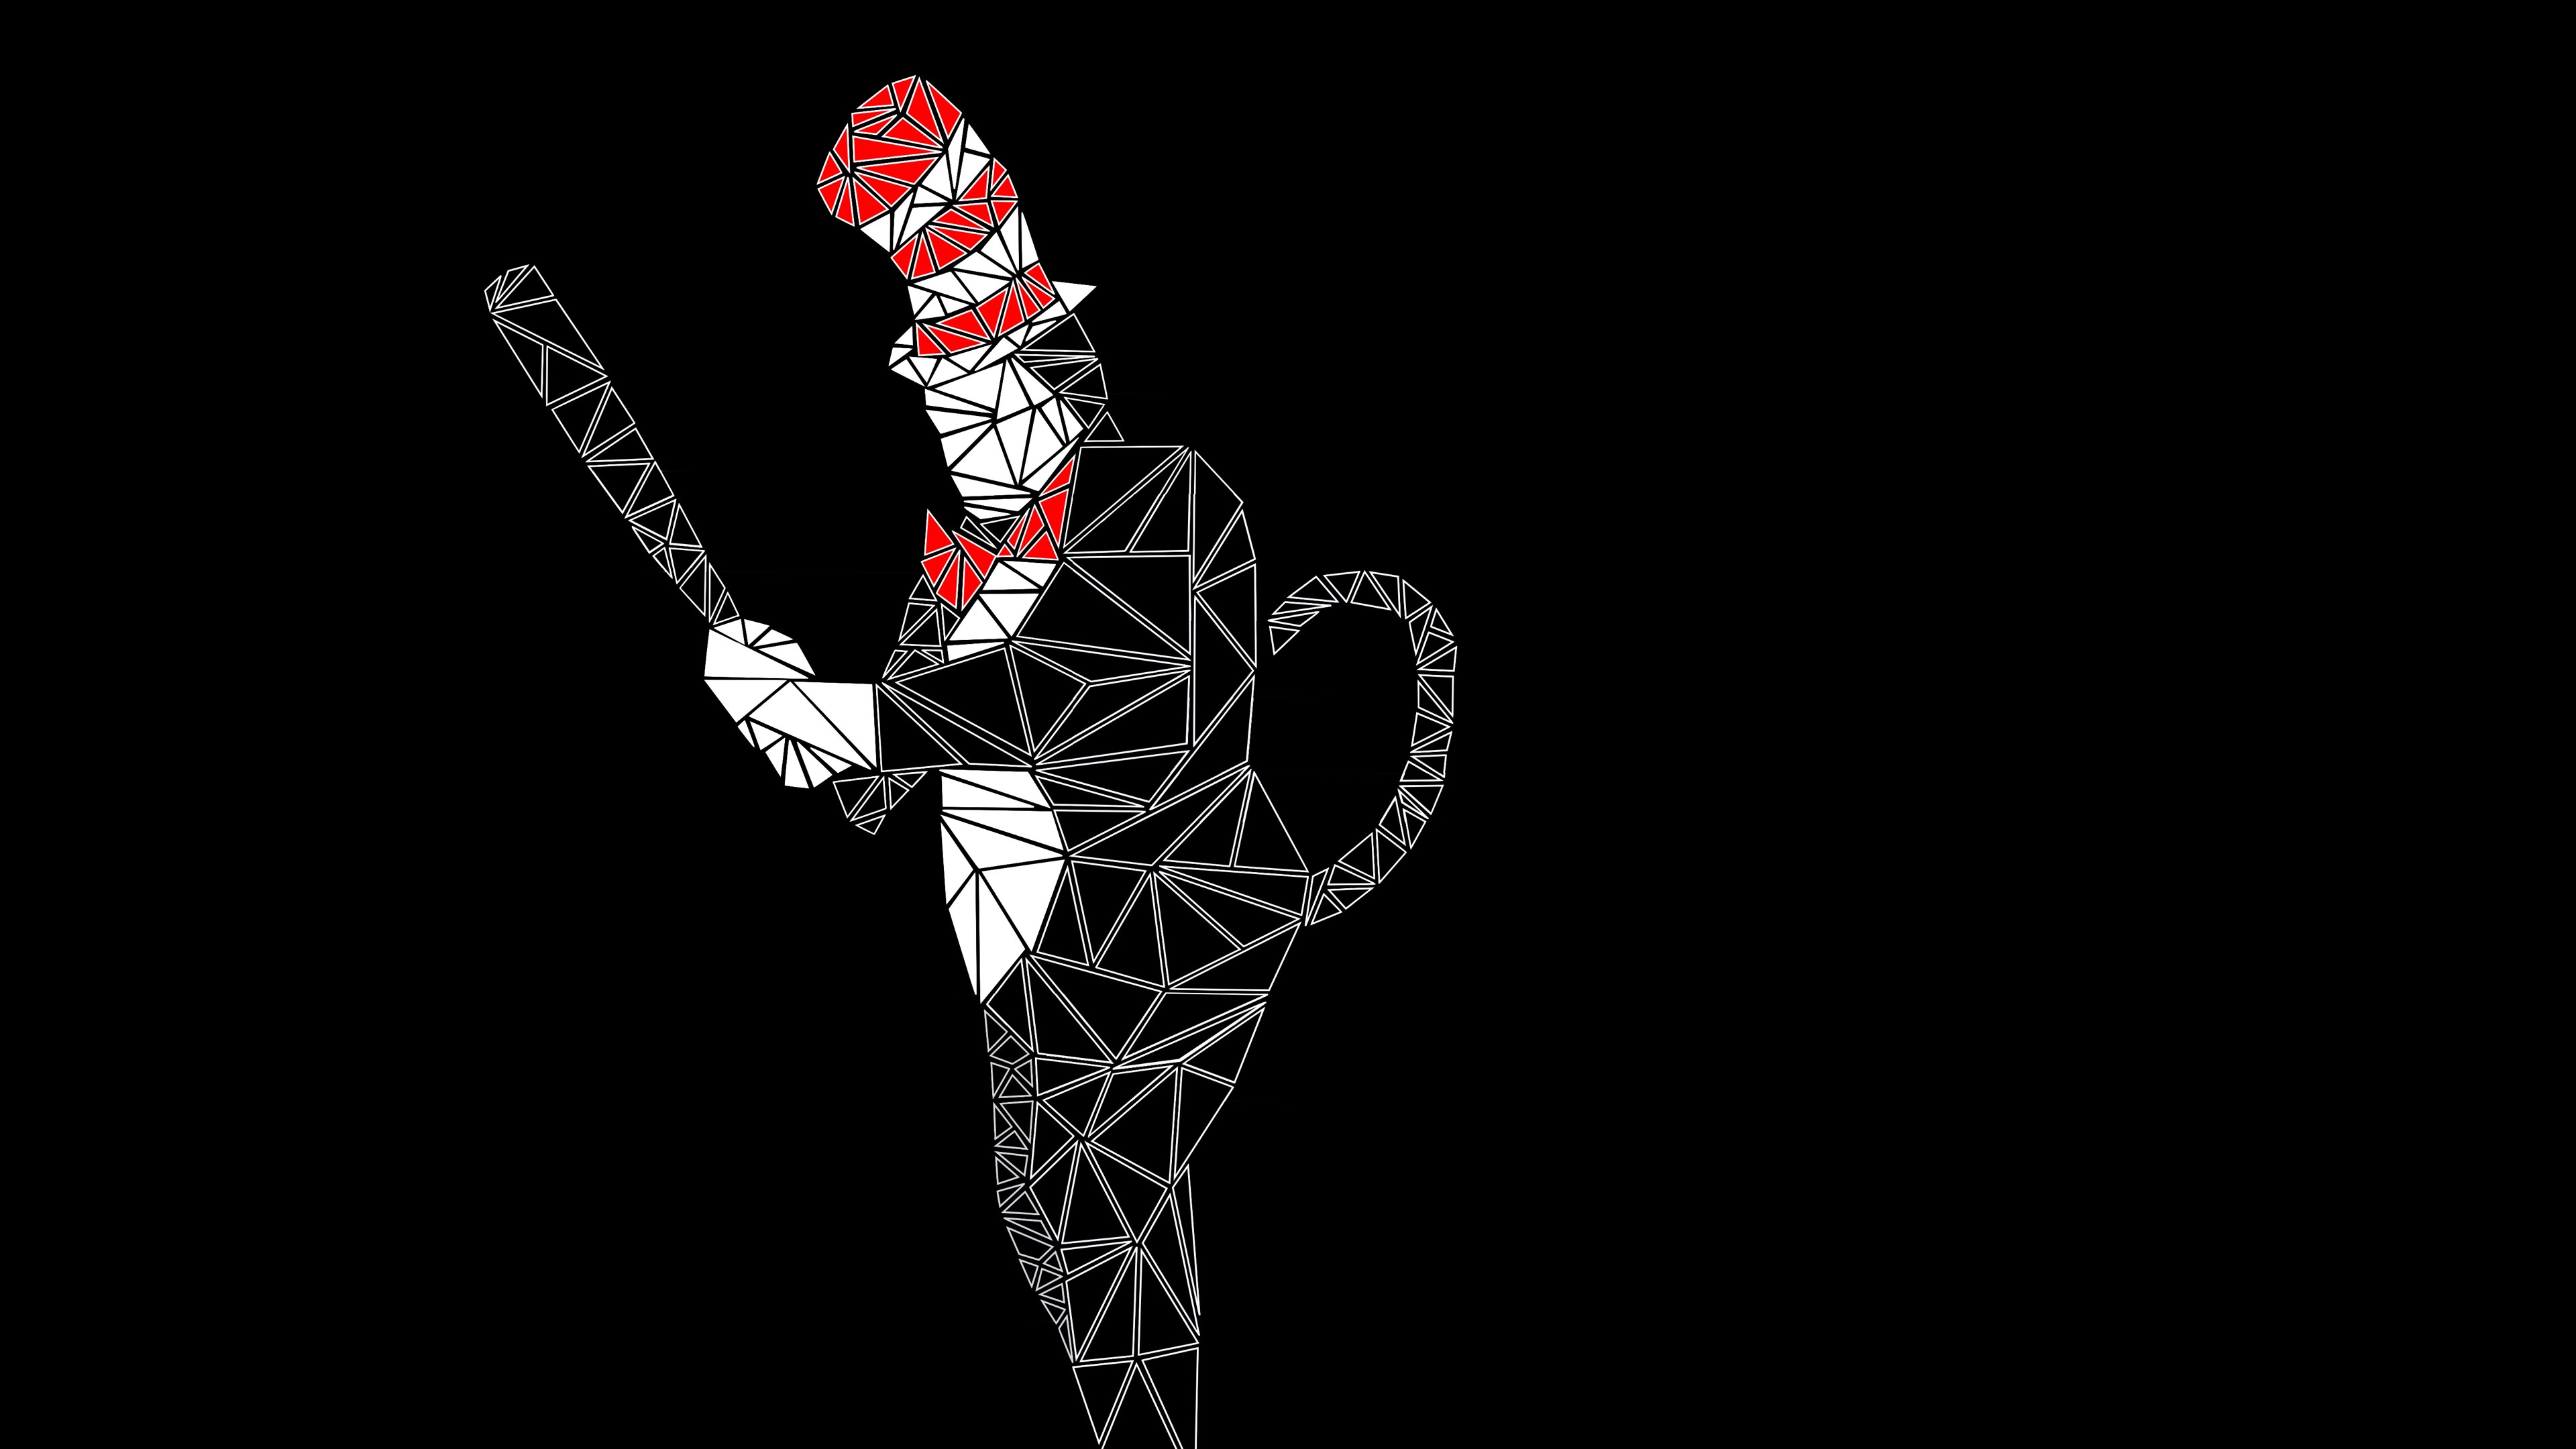 Triangle Cat In The Hat 4k Ultra Hd Wallpaper Background Image